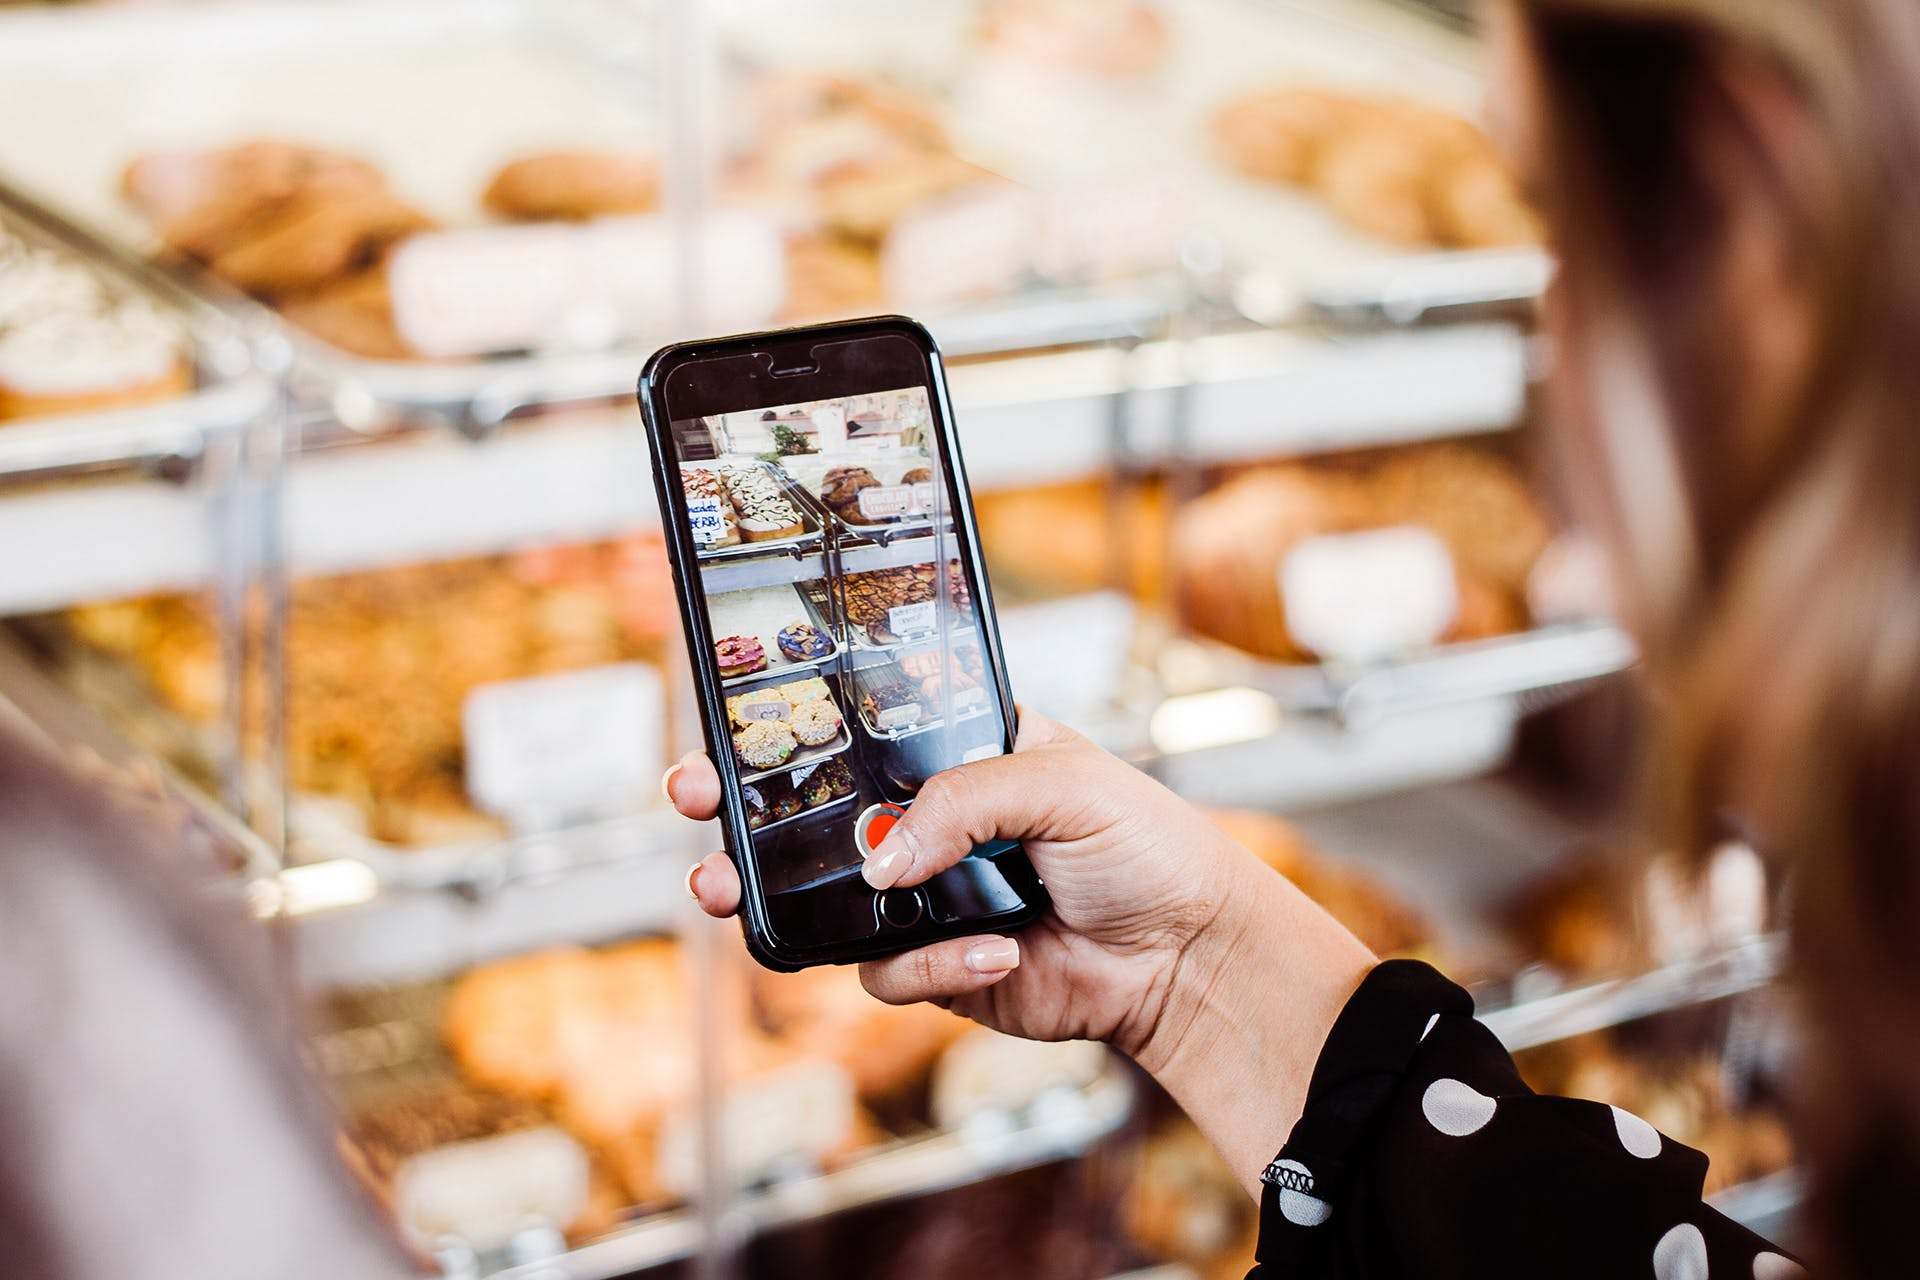 person holding a phone taking photographs of some baked treats